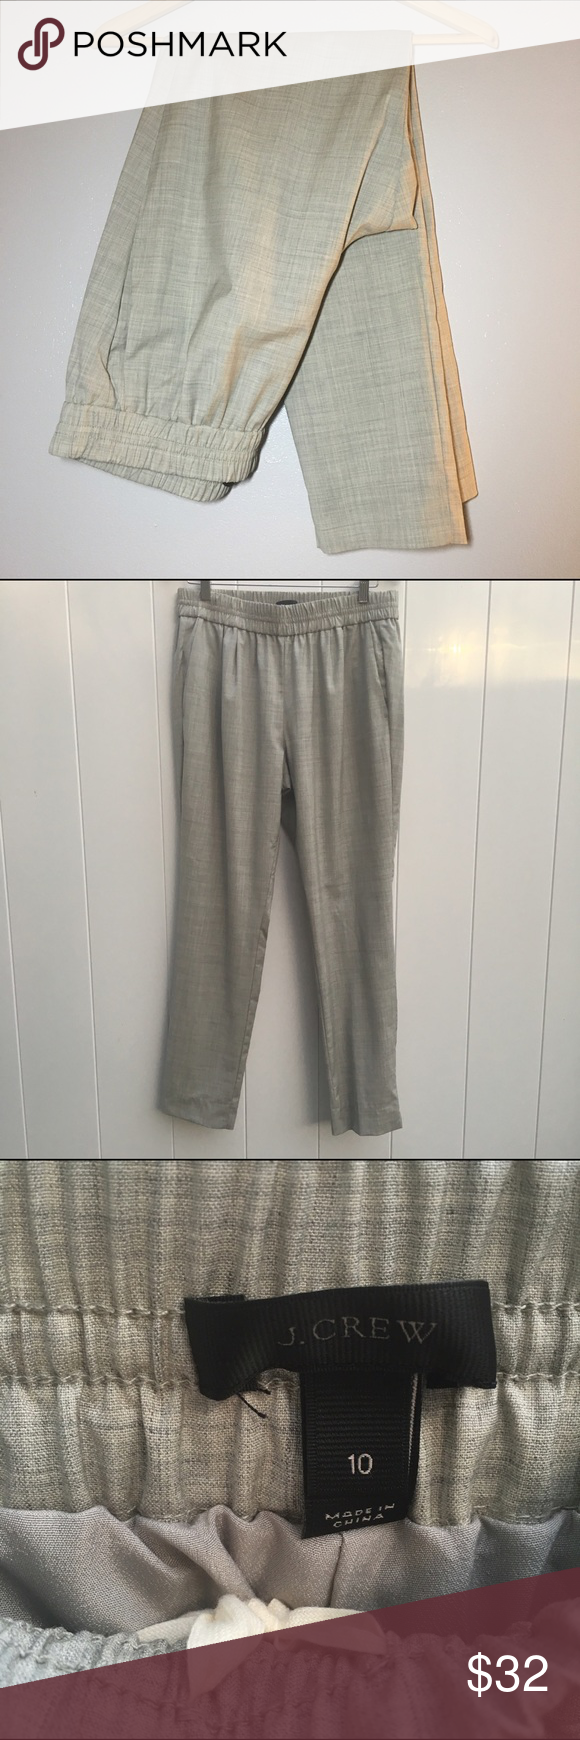 J. Crew Light Gray Harlow Pants J. Crew Harlow Pants. Light gray with crosshatch detail. Draw string on the inside. Lined. Size 10. Back pockets are sewn shut. 🐳 Sits at the hip. Relaxed through the hip and thigh. Slim leg. Elastic at the waist. 🐟 56% wool. 41% Viscose. 3% Elastane. Lining: 100% Polyester. 🐬 Stock photo taken from J. Crew's website to show the pants modeled. Thanks for looking! Please comment with questions! J. Crew Pants Trousers